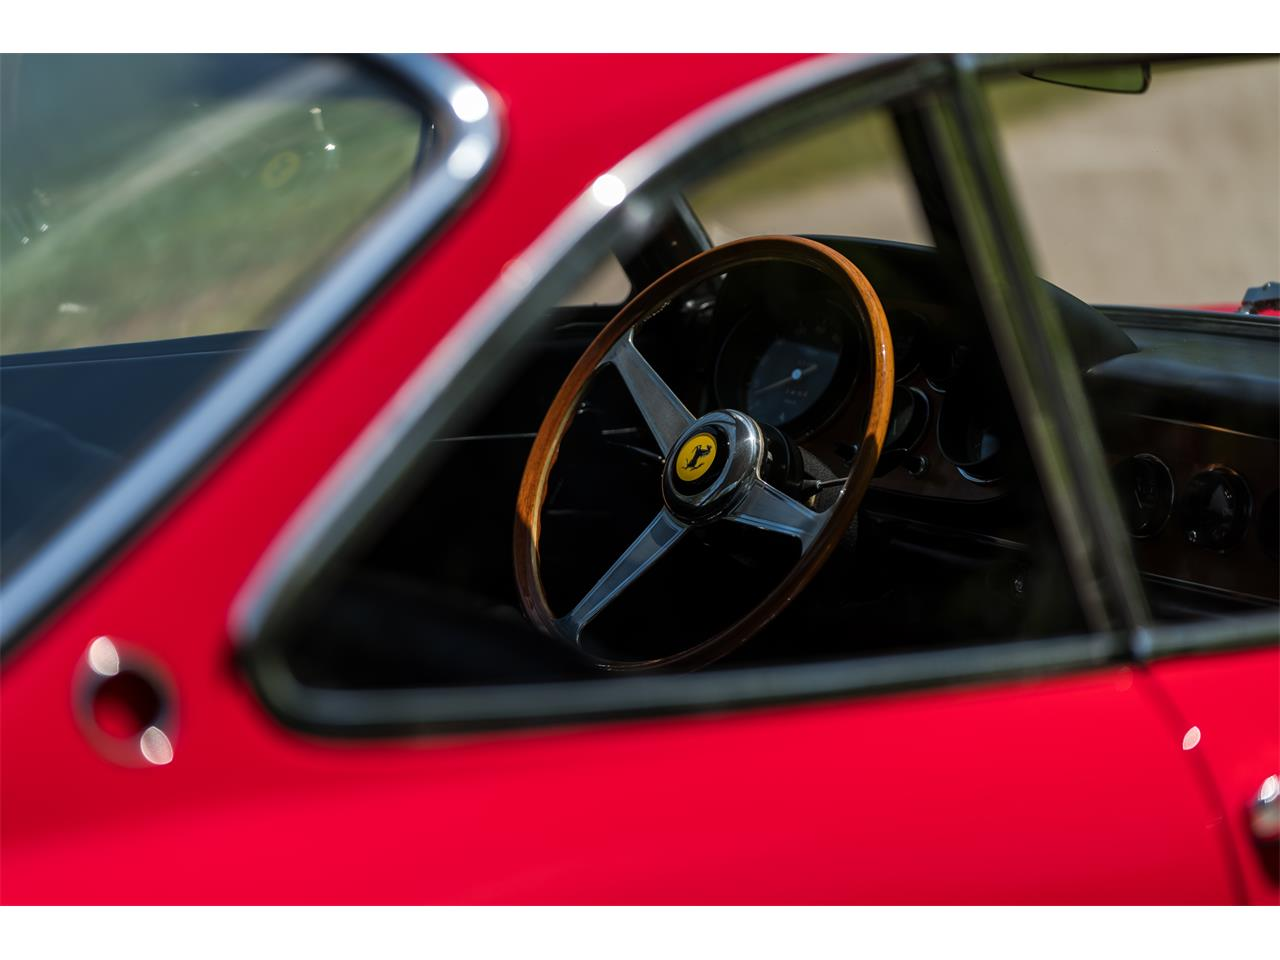 Large Picture of 1967 Ferrari 330 GTC located in Pontiac Michigan - $650,000.00 - QNXU